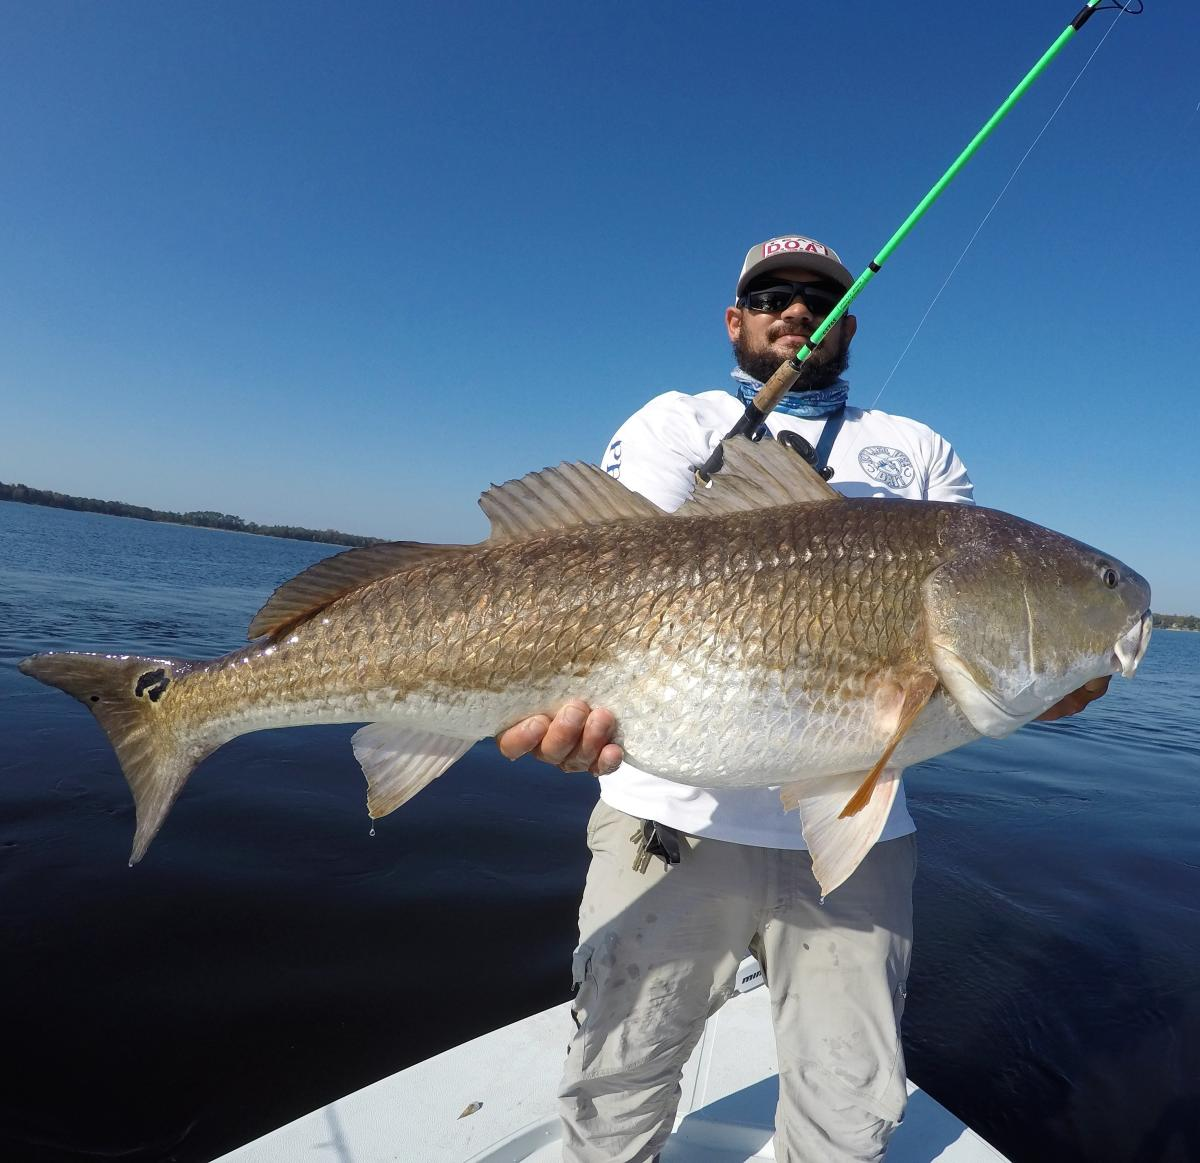 The key to winter fishing for Key city fish